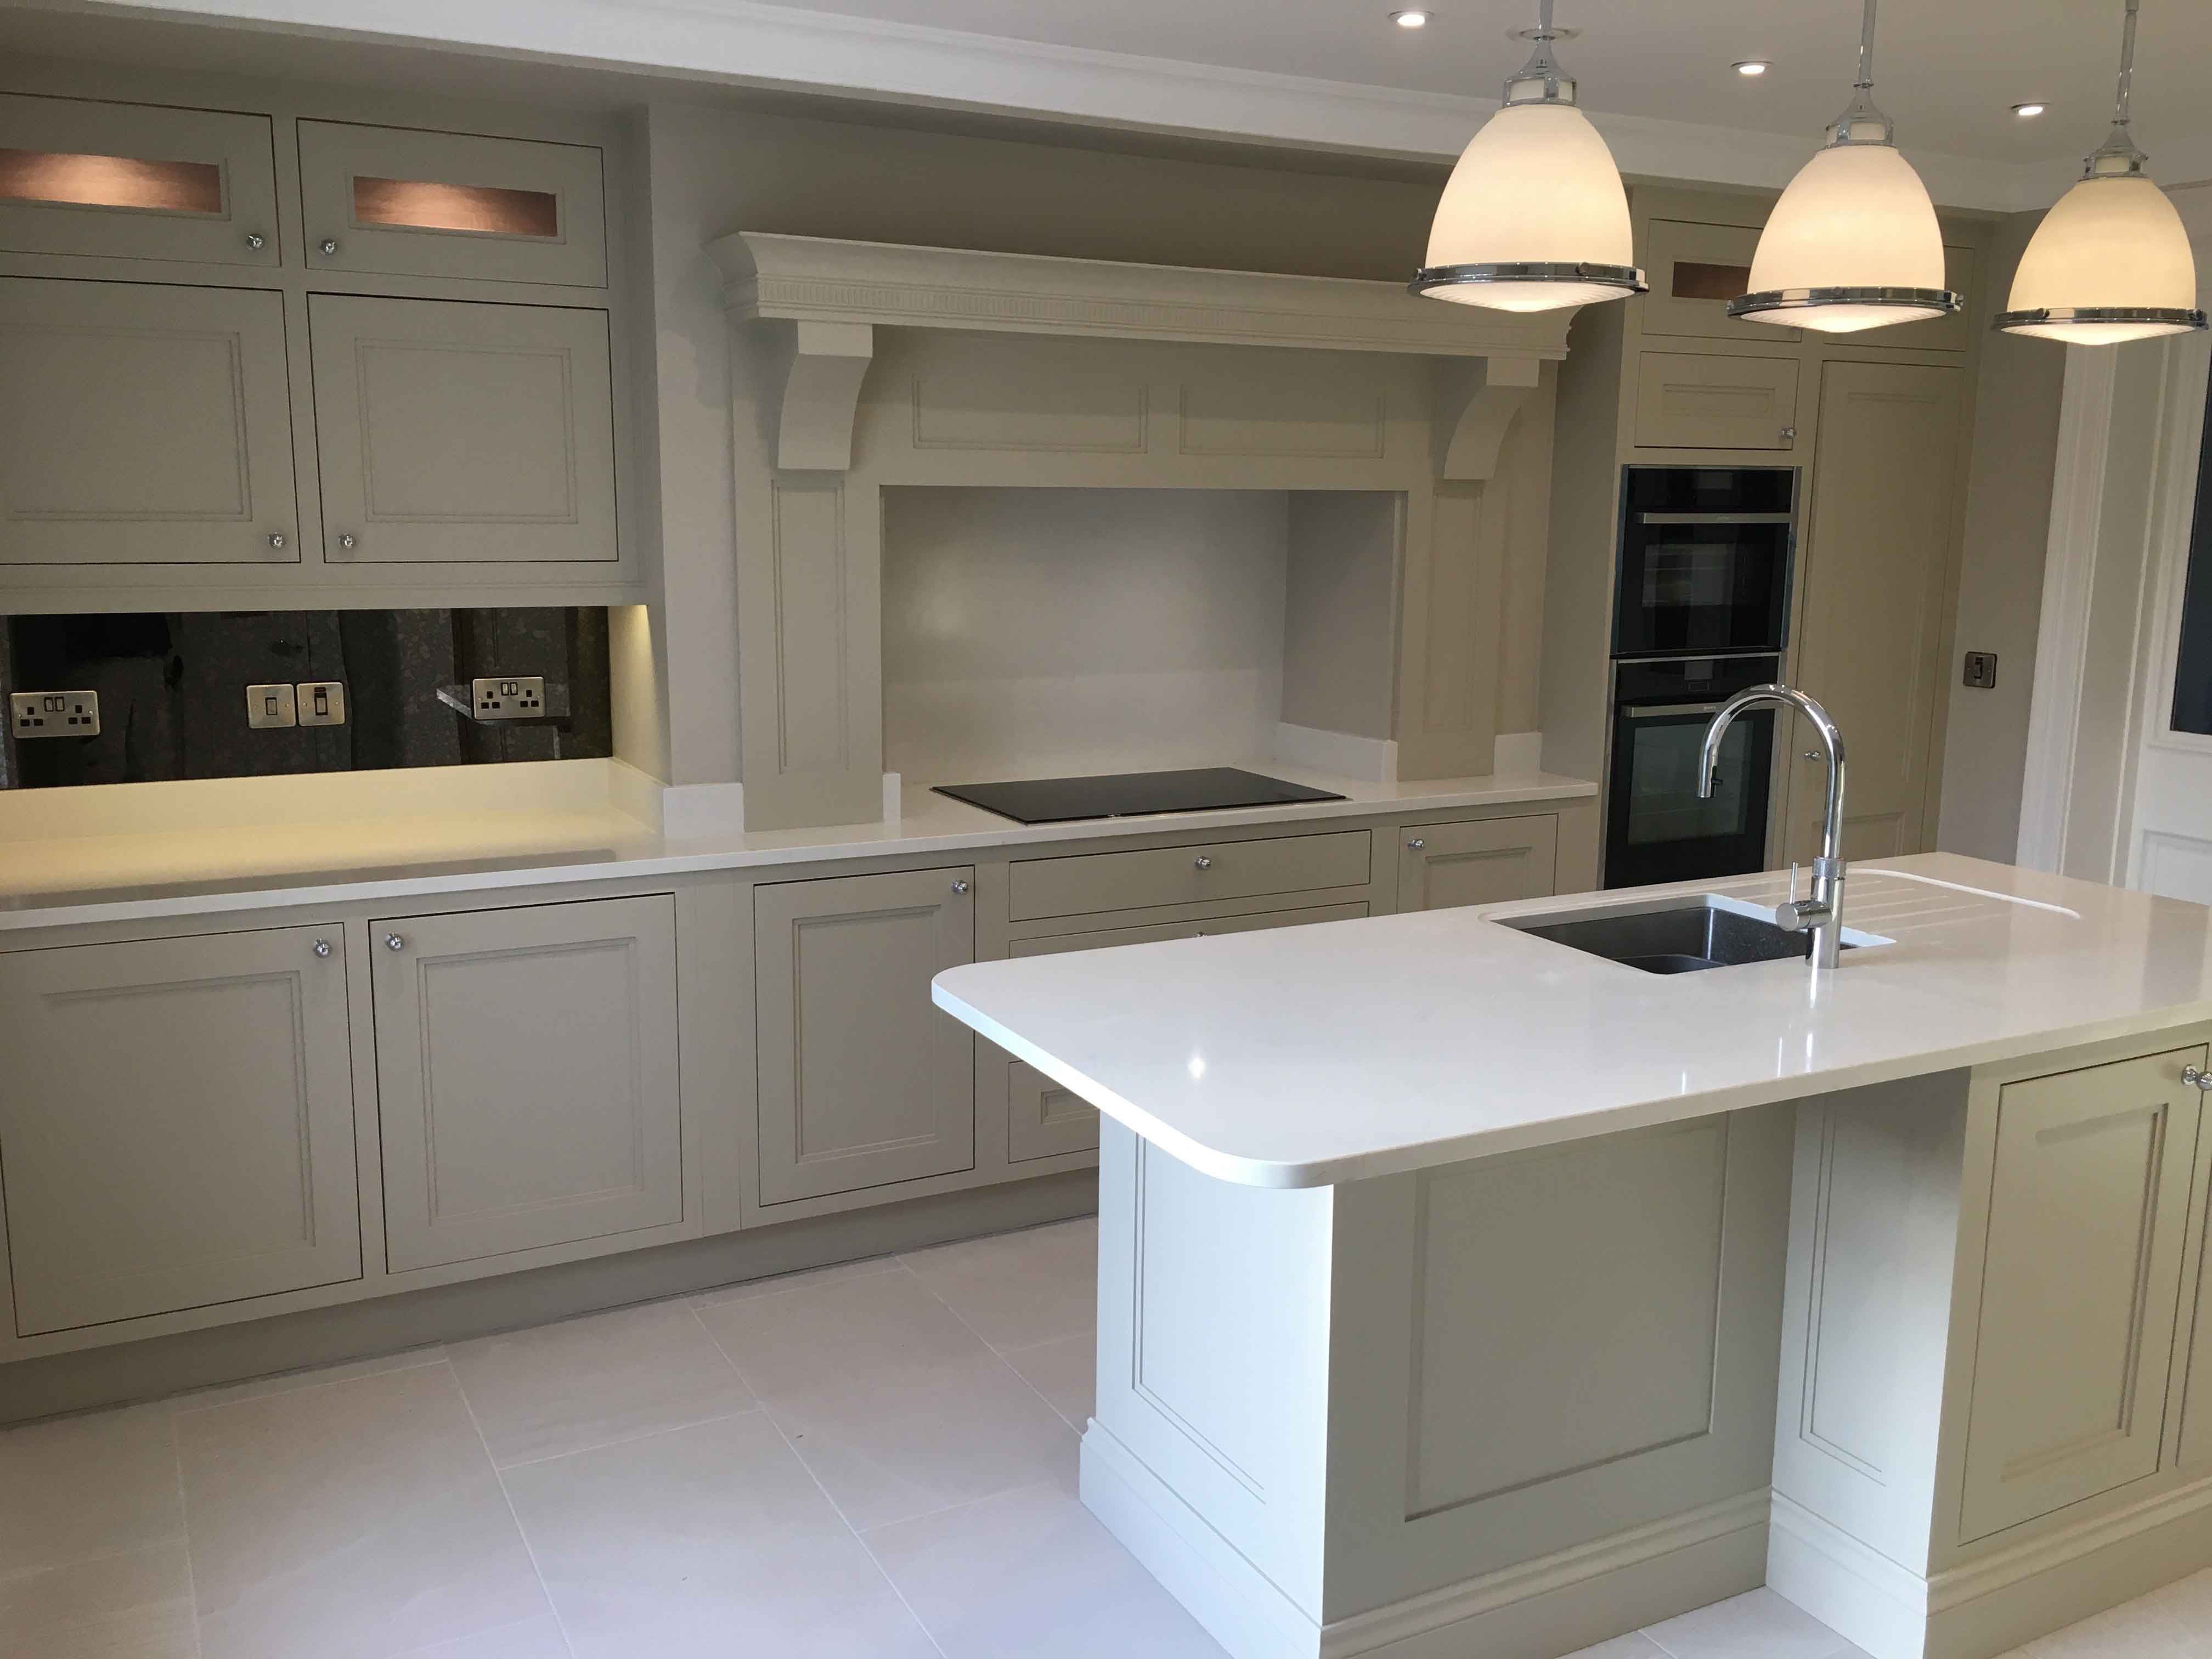 Bespoke hand painted kitchen painters Impressions Painting and Decorating in Dublin